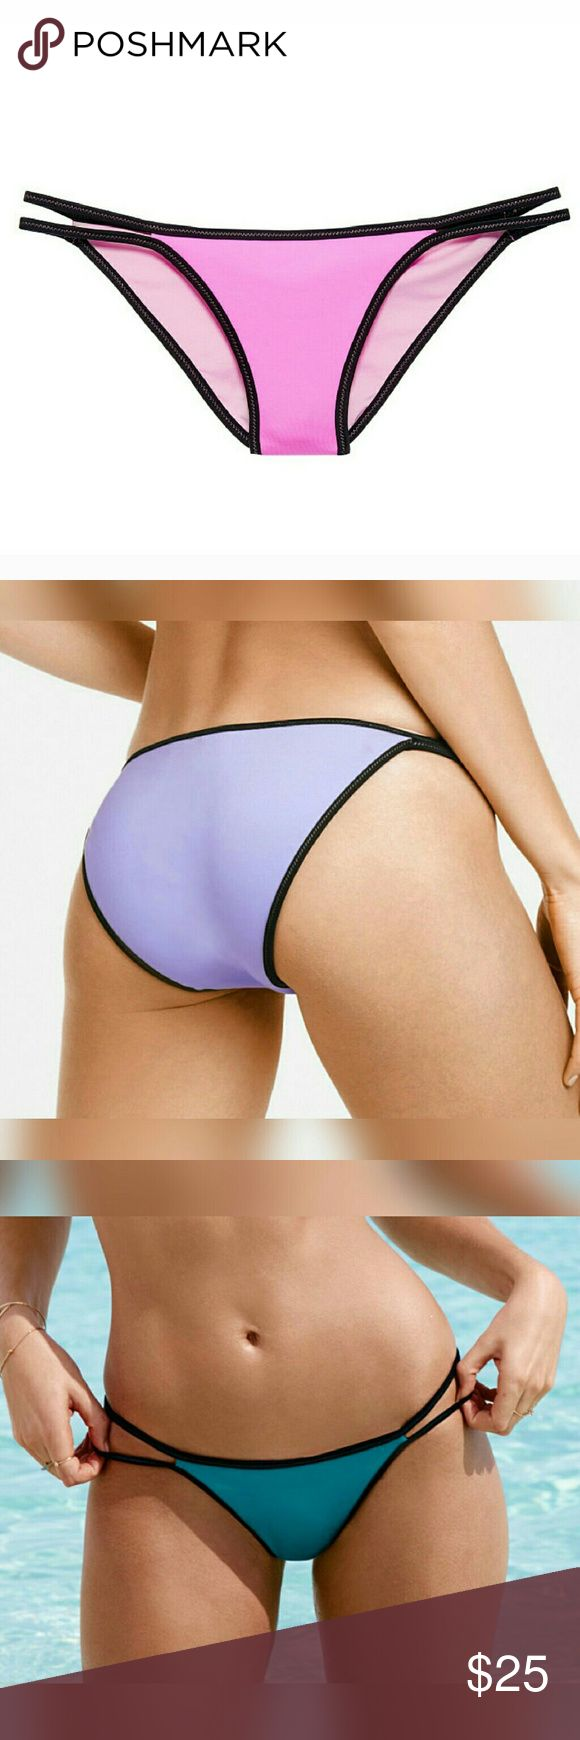 vs - surf bikini bottom victoria's secret surf bikini bottom in the color 'beach orchid' as shown in the first picture. the second and third pictures are to show 'FIT ONLY'.  the color for sale is in the first picture and is 'BEACH ORCHID'.  🚫no trades  🚫no holds Victoria's Secret Swim Bikinis